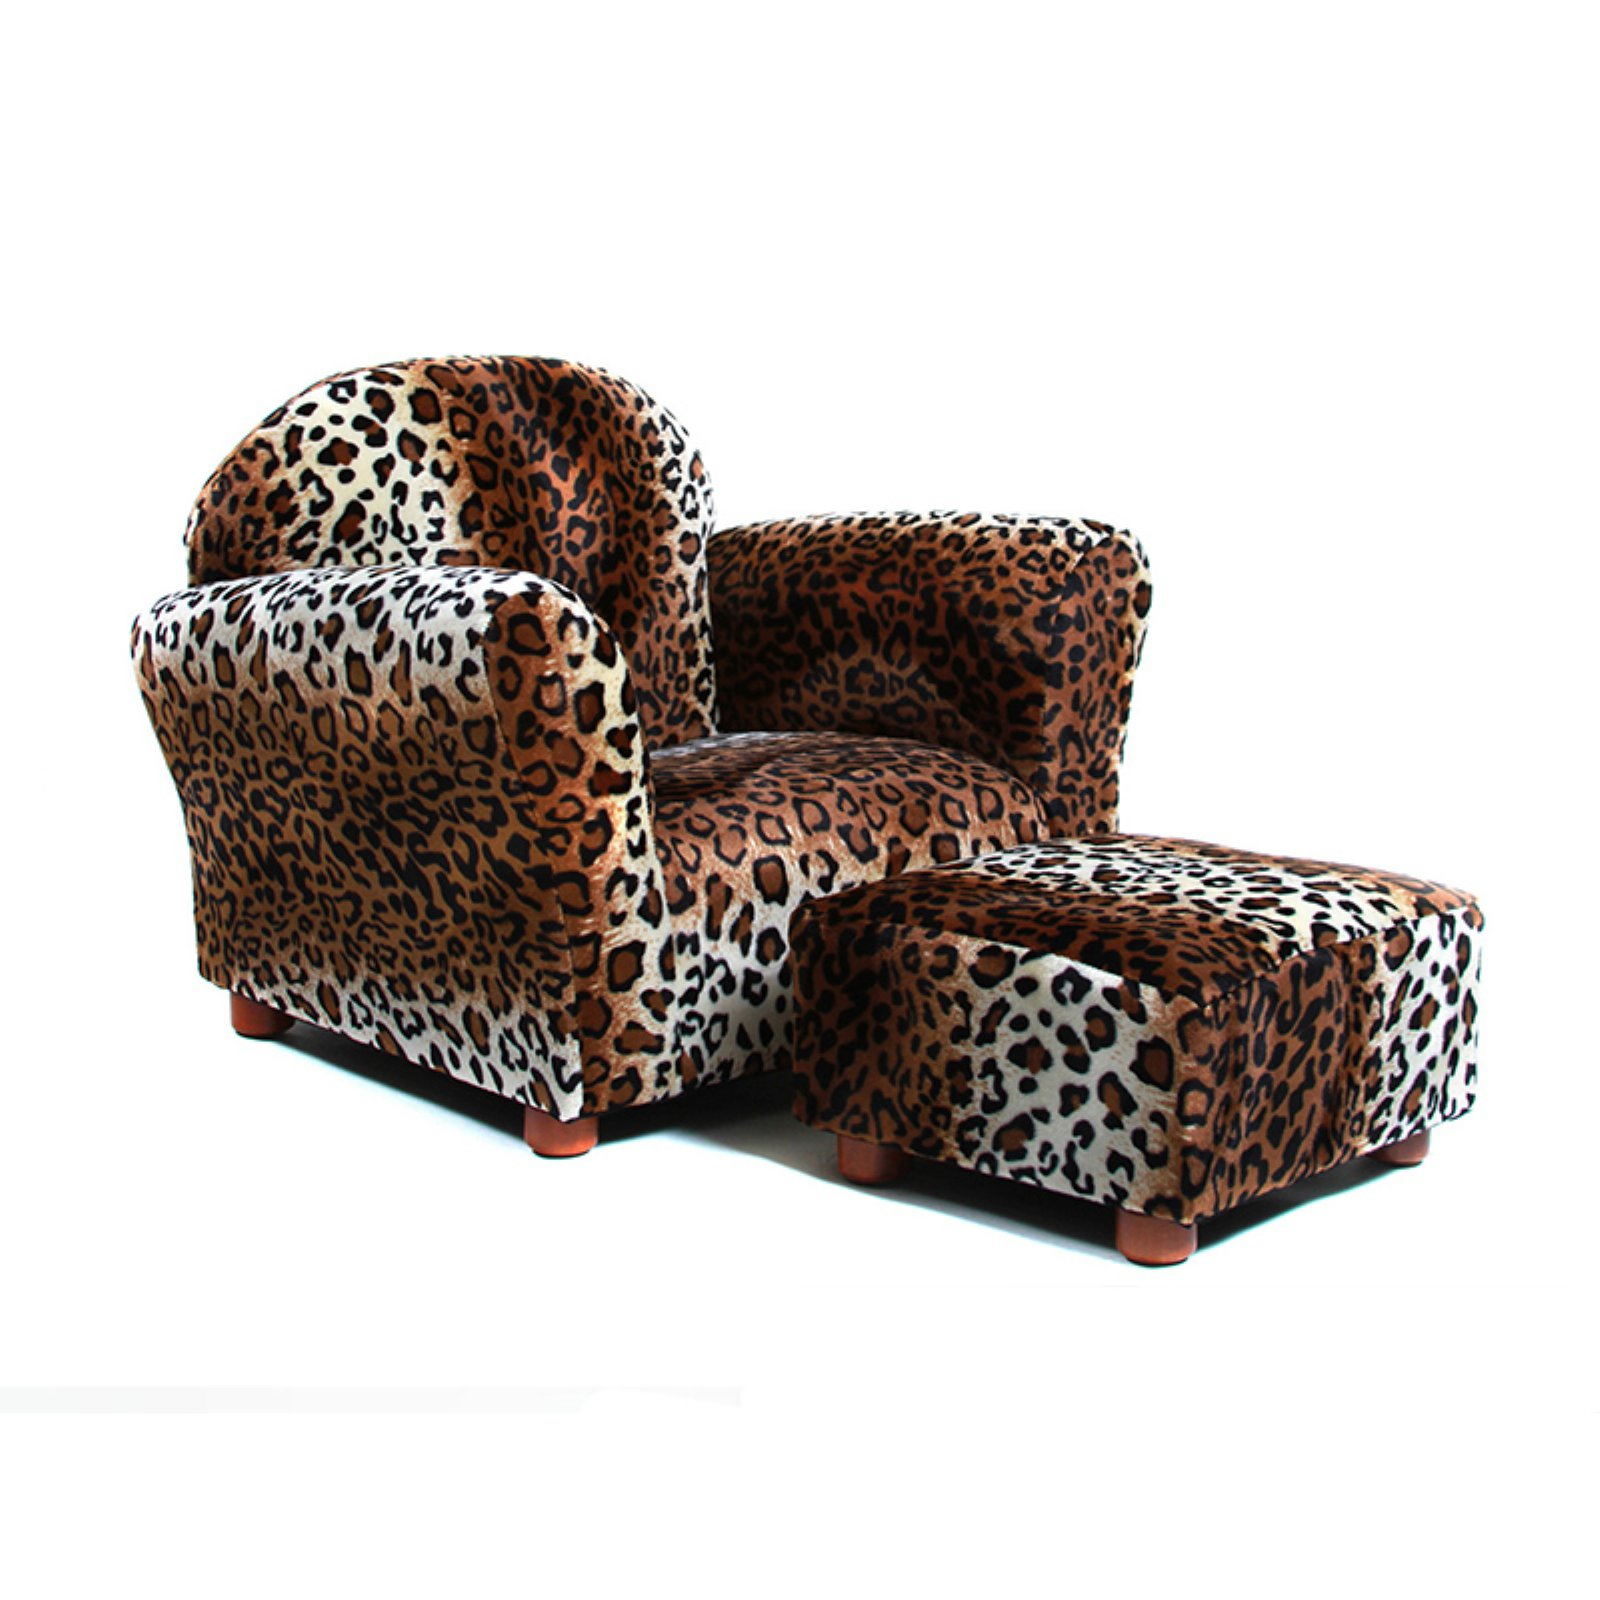 KEET Roundy Kids Chair Leopard with Ottoman  sc 1 st  Walmart.com & KEET Roundy Kids Chair Leopard with Ottoman - Walmart.com islam-shia.org